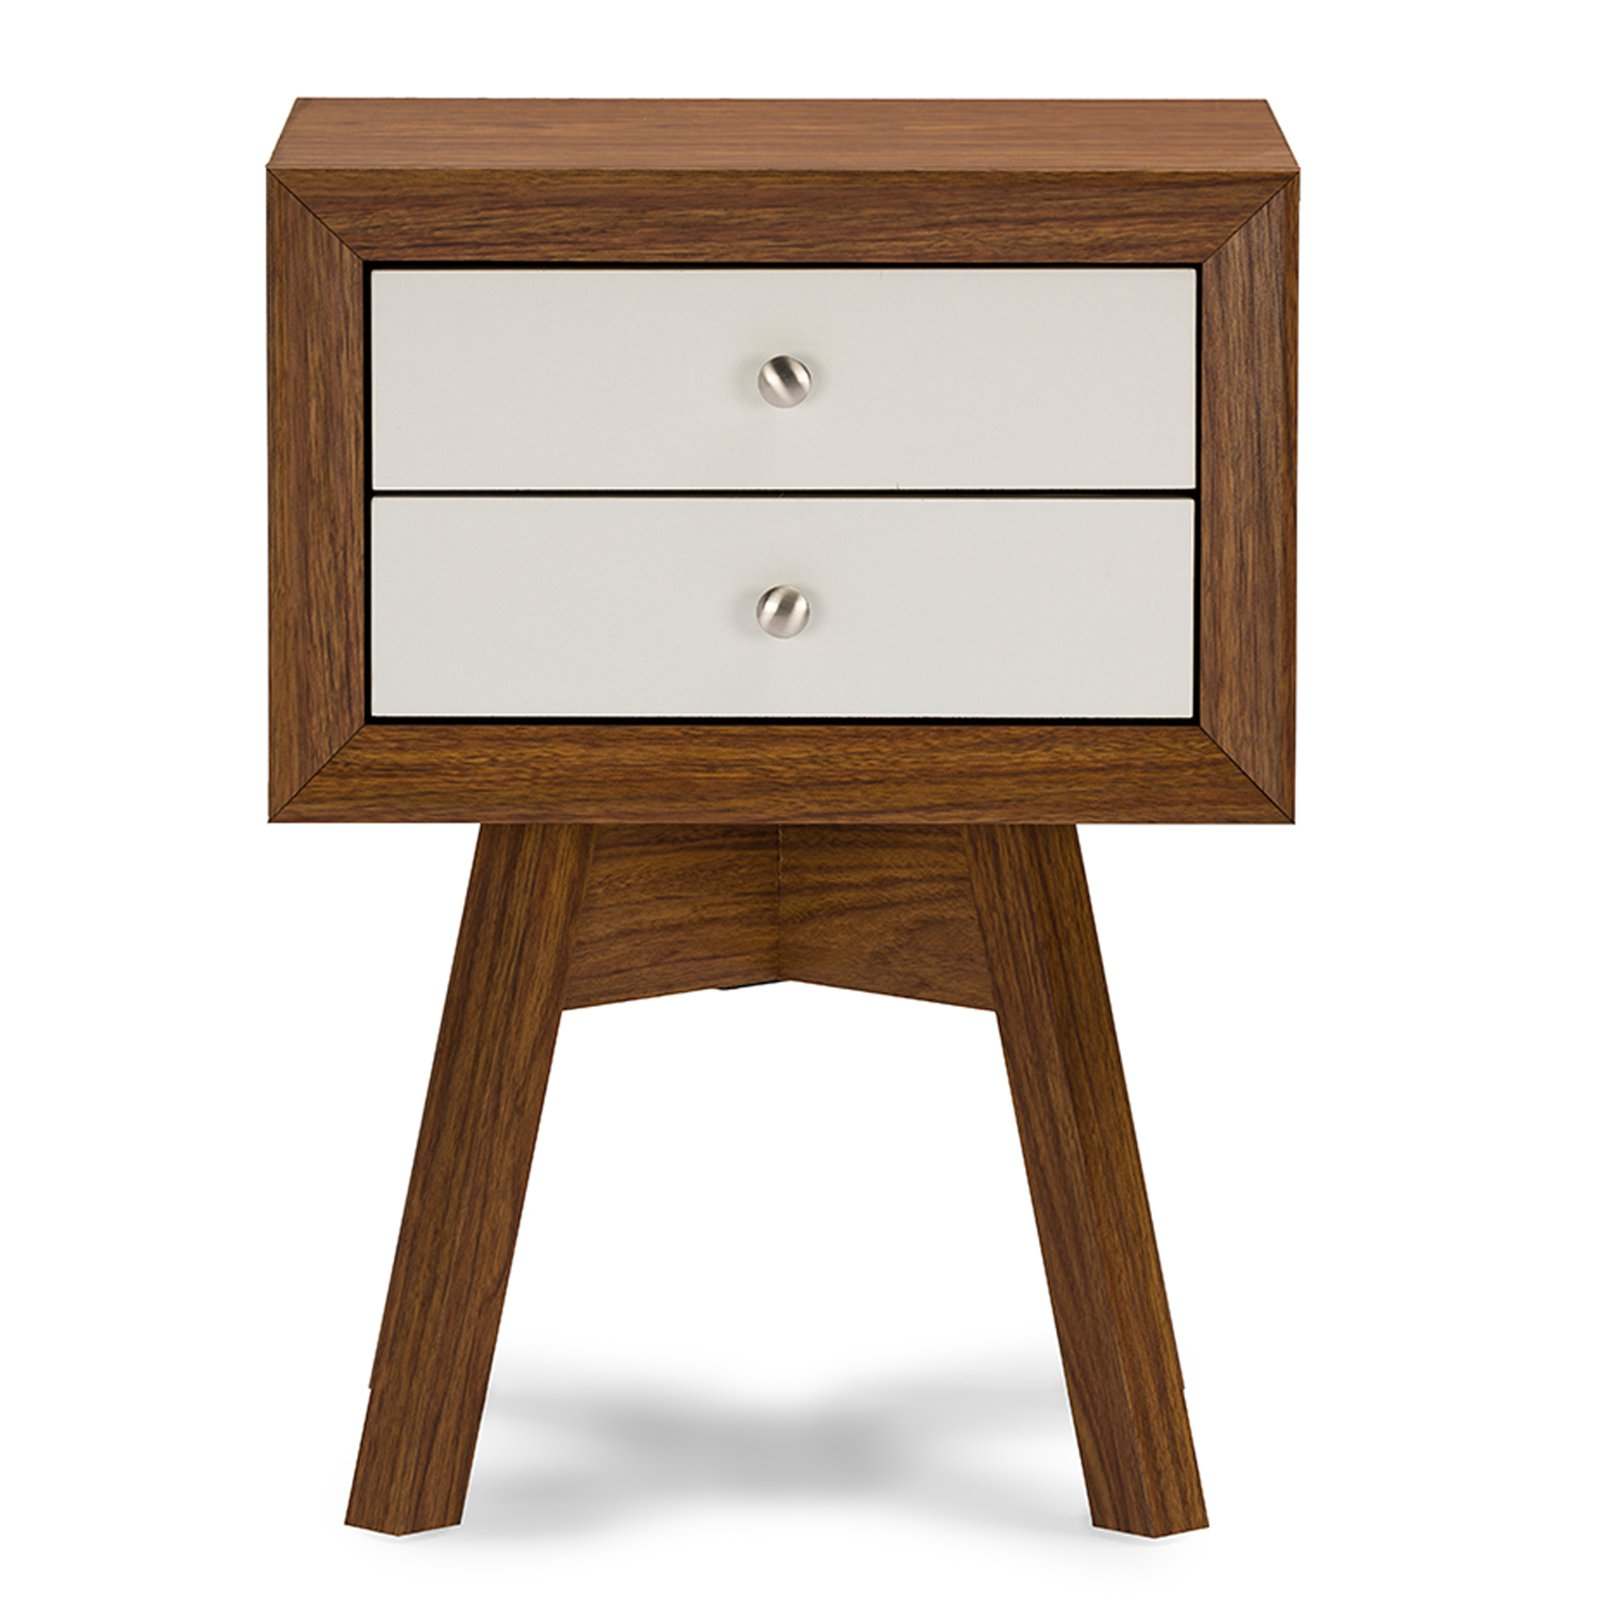 Baxton Studio Warwick Two-tone Walnut and White Modern Accent Table and Nightstand by Wholesale Interiors